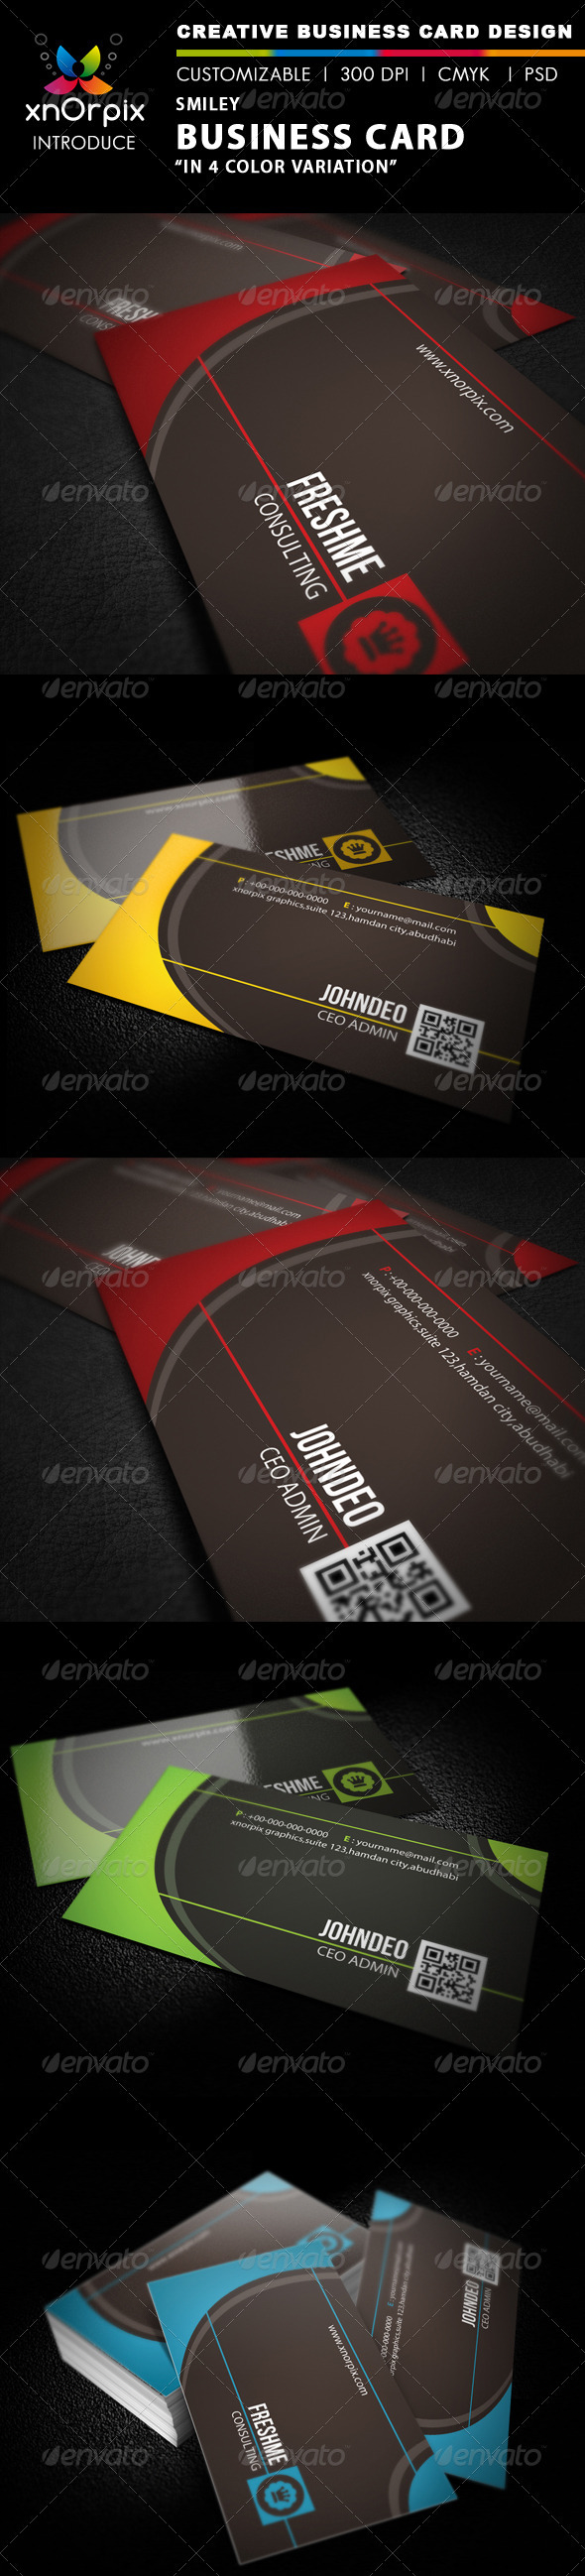 Smiley Business Card - Business Cards Print Templates